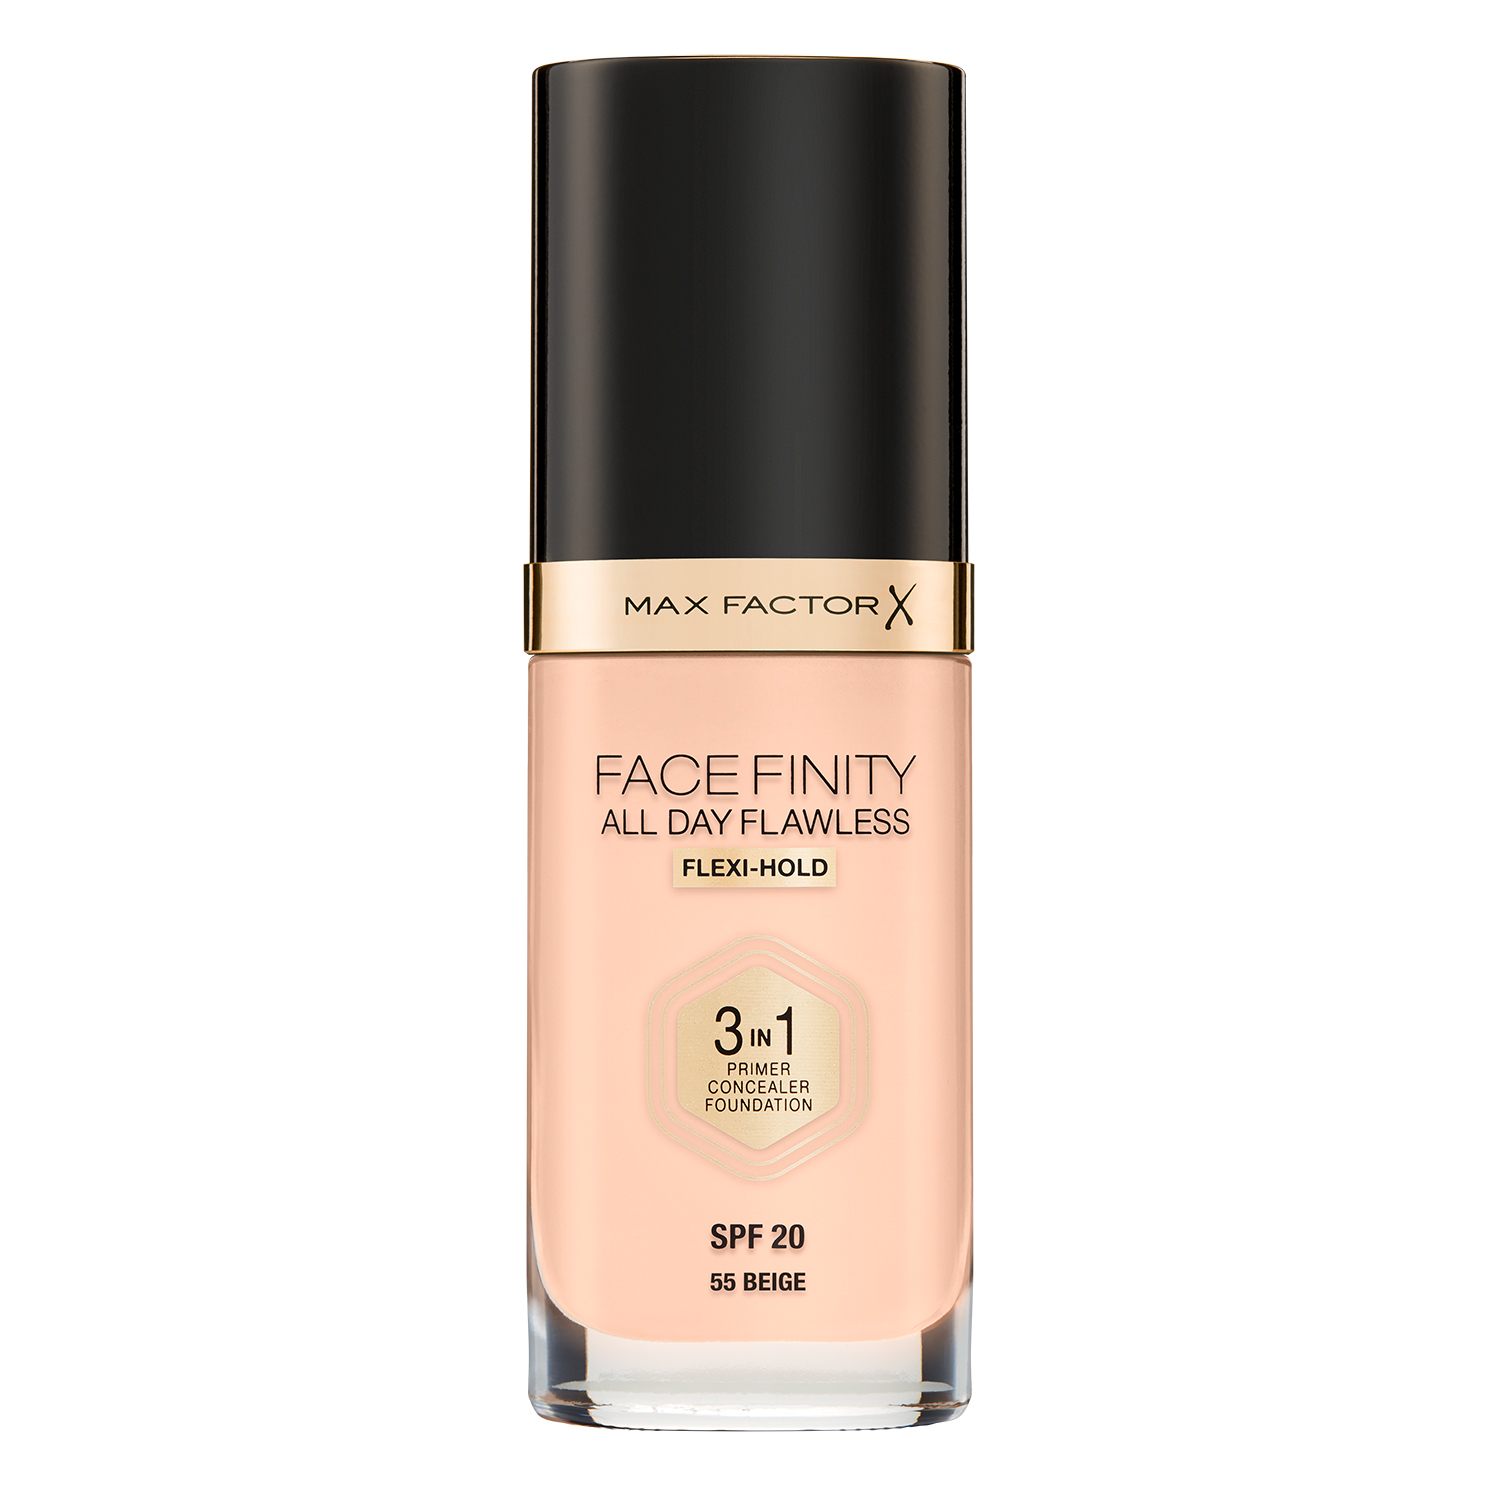 Тональная основа Max Factor Facefinity All Day Flawless 3-in-1, 55 тон beige